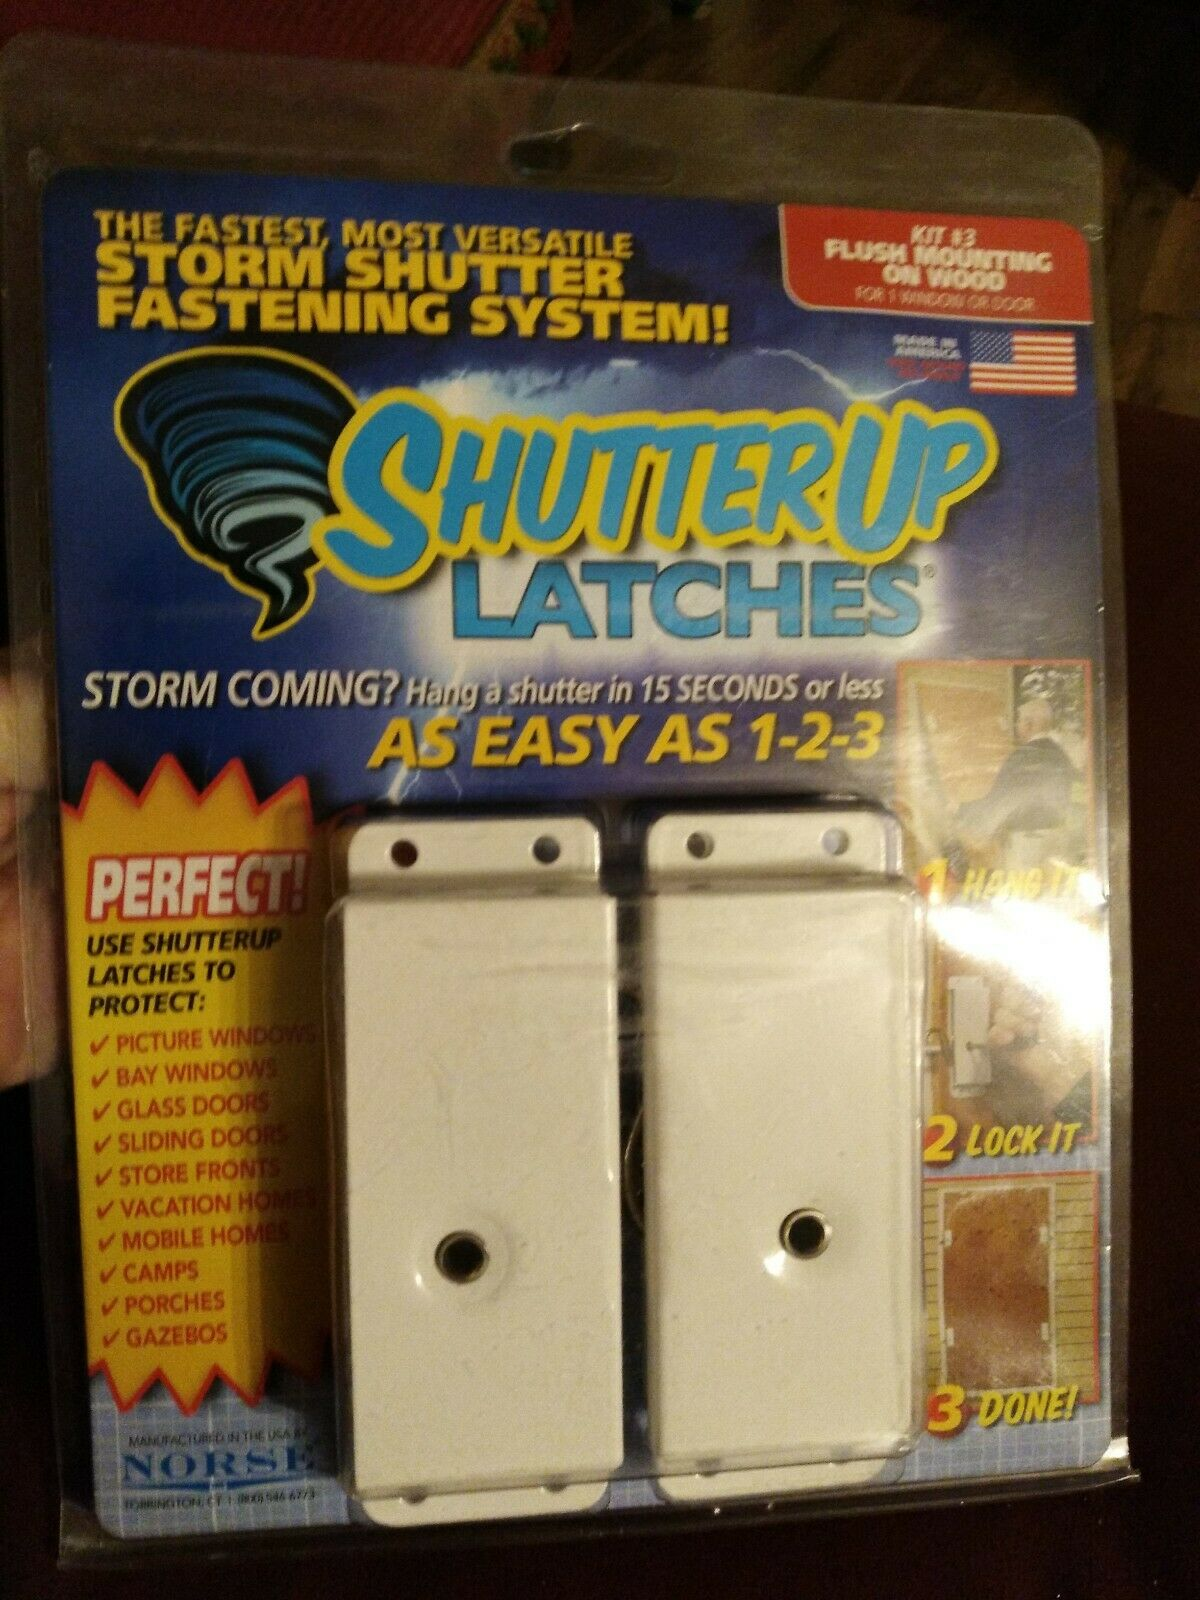 NORSE SHUTTER UP LATCHES - AS EASY AS 1-2-3